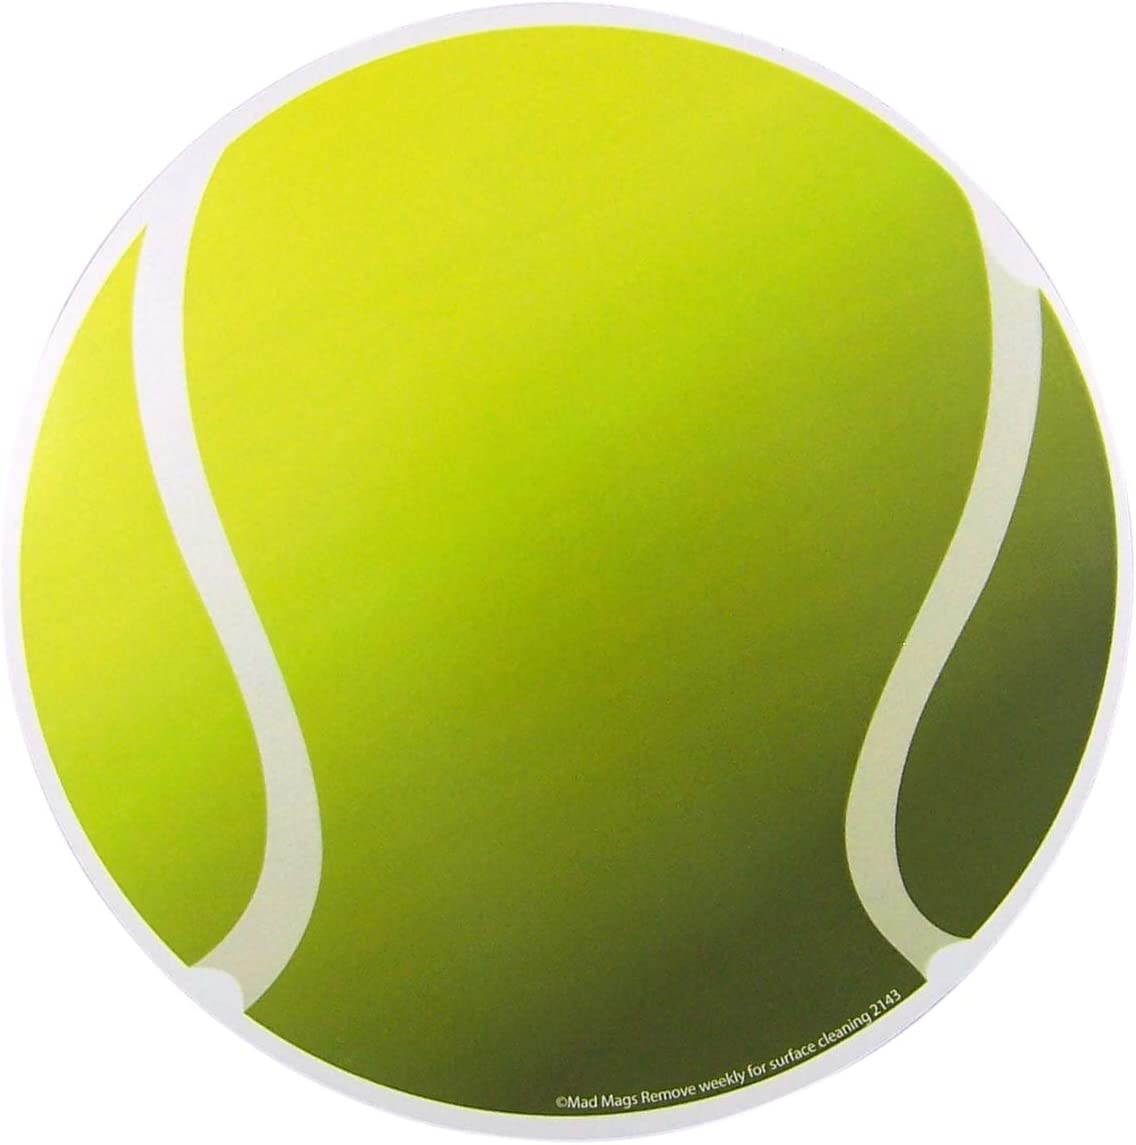 Car Magnet Sports Athlete Tennis Ball Magnetic Decal for Locker or Fridge, 5 3/4 Inches